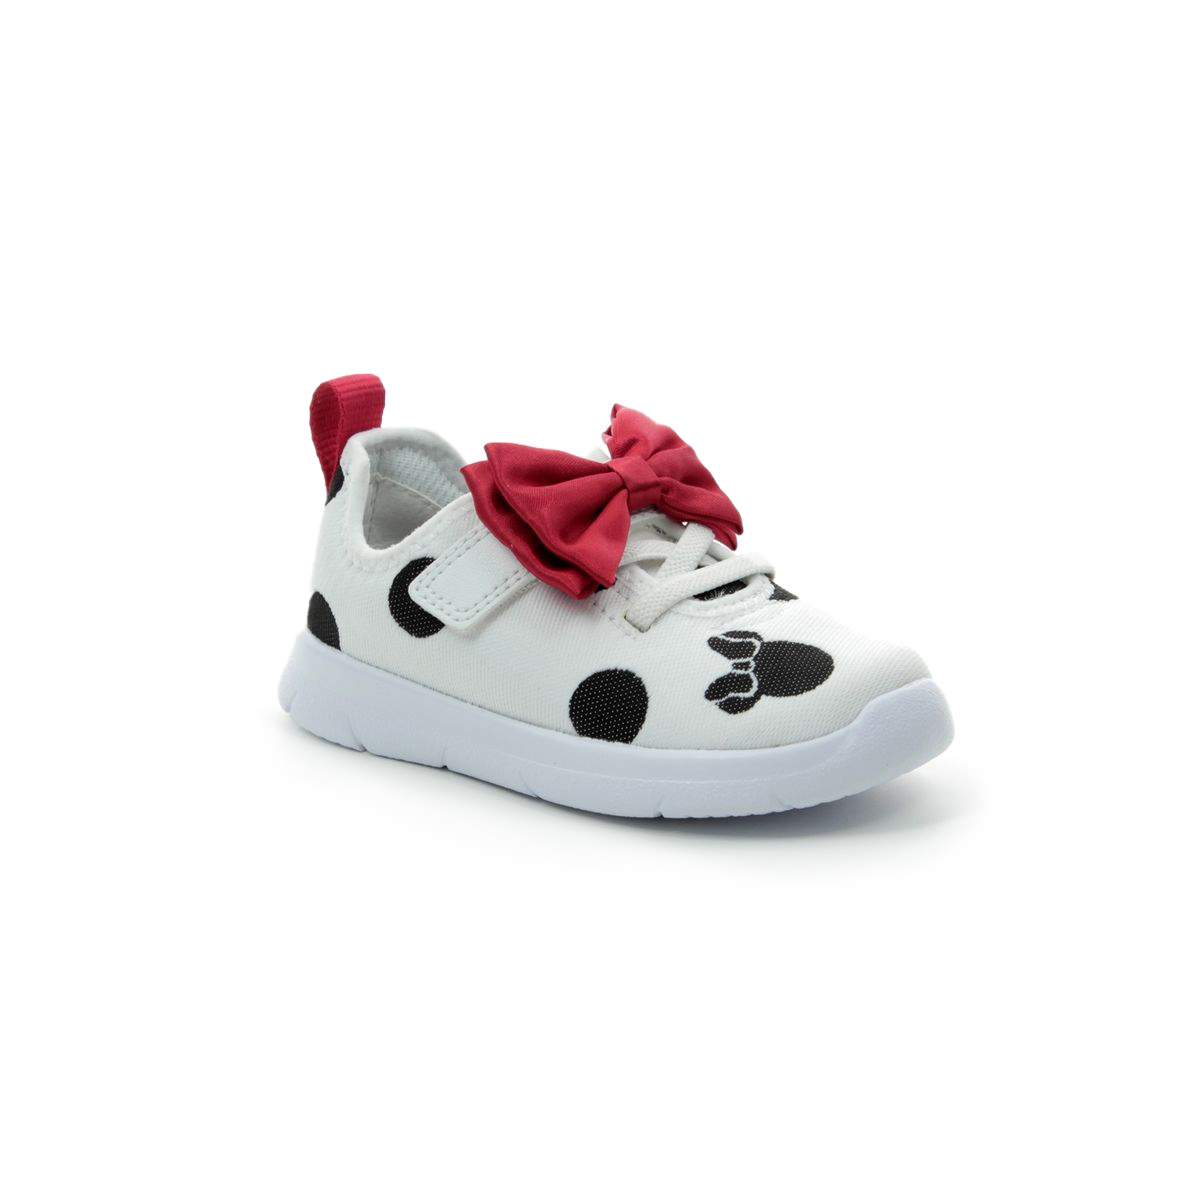 Clarks Ath Bow T Disney F Fit White